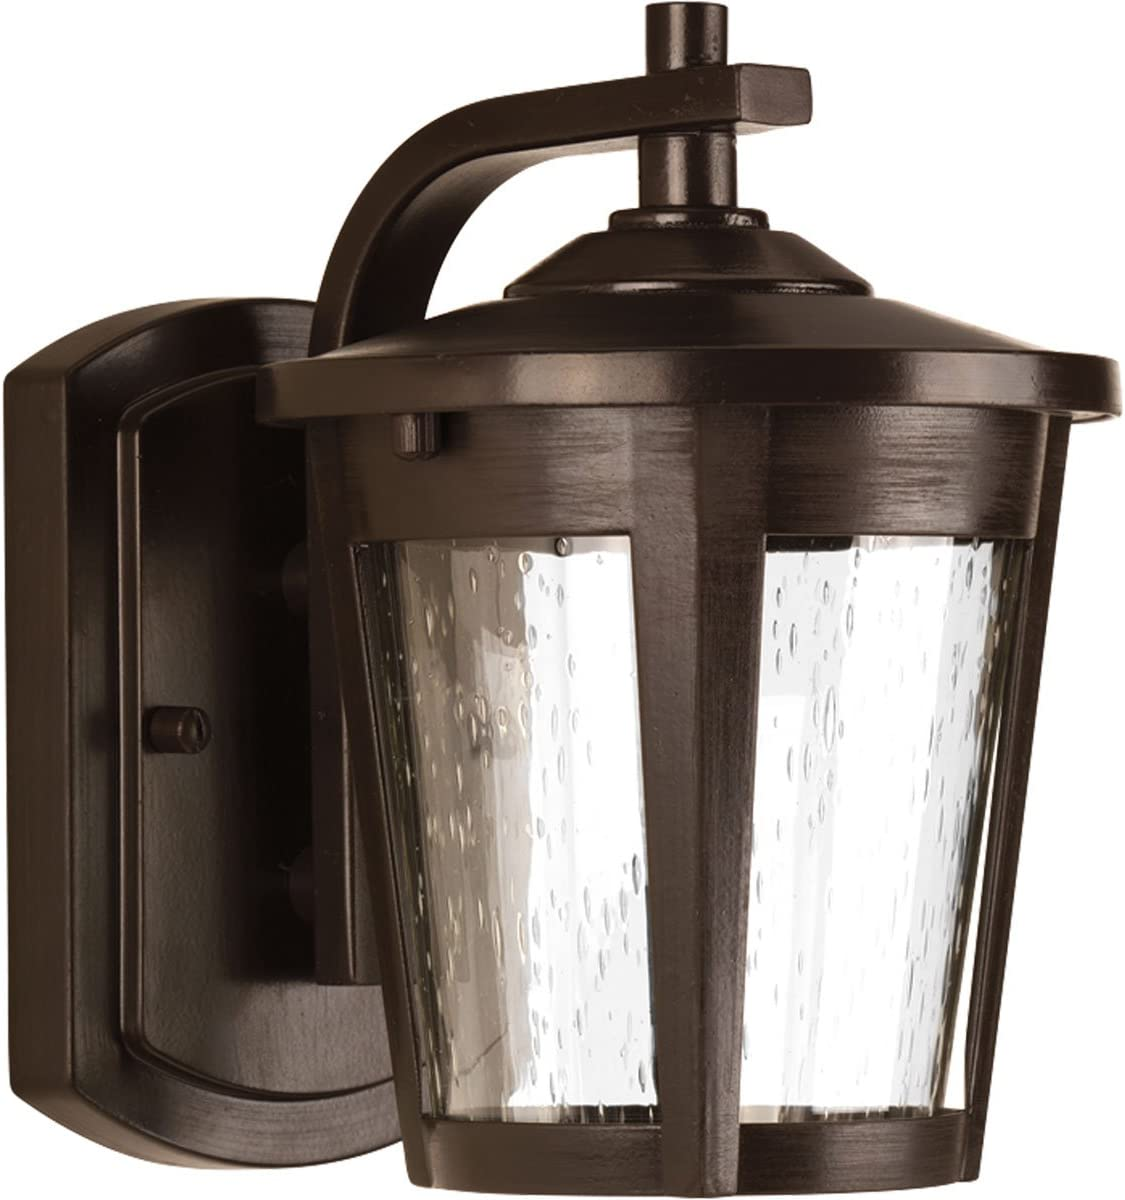 Amazon Com Progress Lighting P6077 2030k9 Transitional One Light Wall Lantern From East Haven Led Collection Dark Finish Antique Bronze Home Improvement